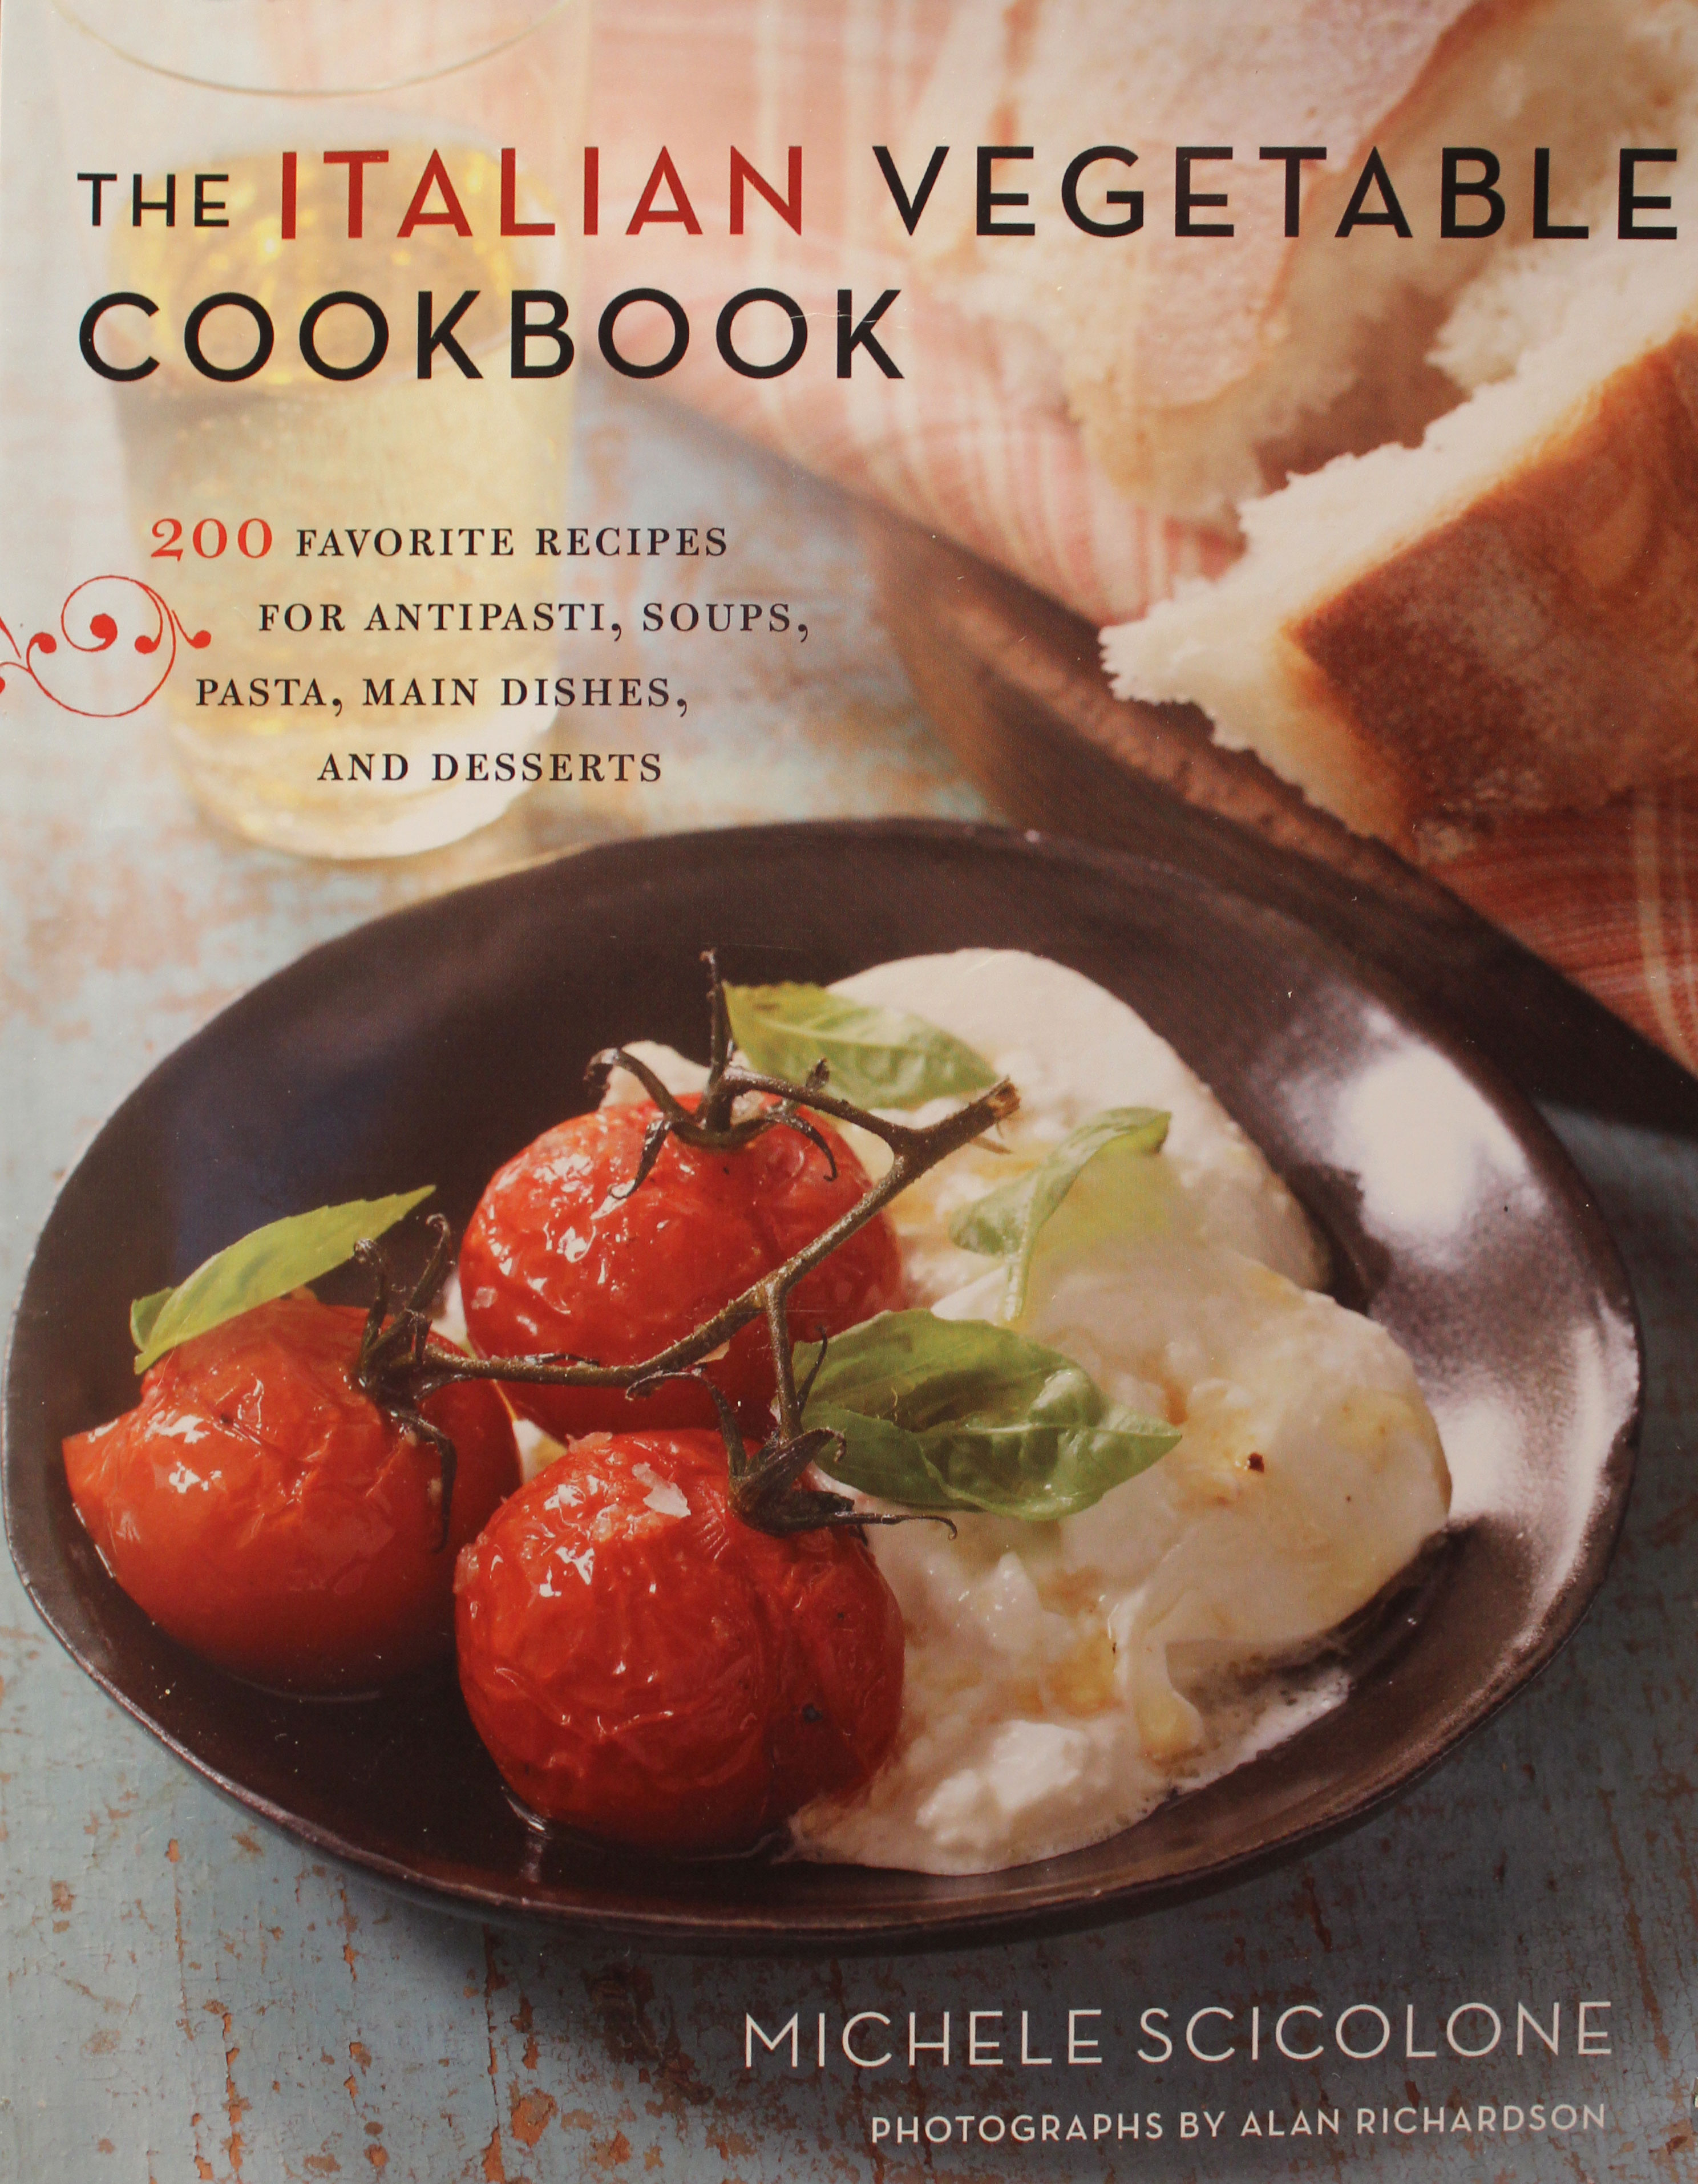 TBT Cookbook Review: The Italian Vegetable Cookbook by Michele Scicolone